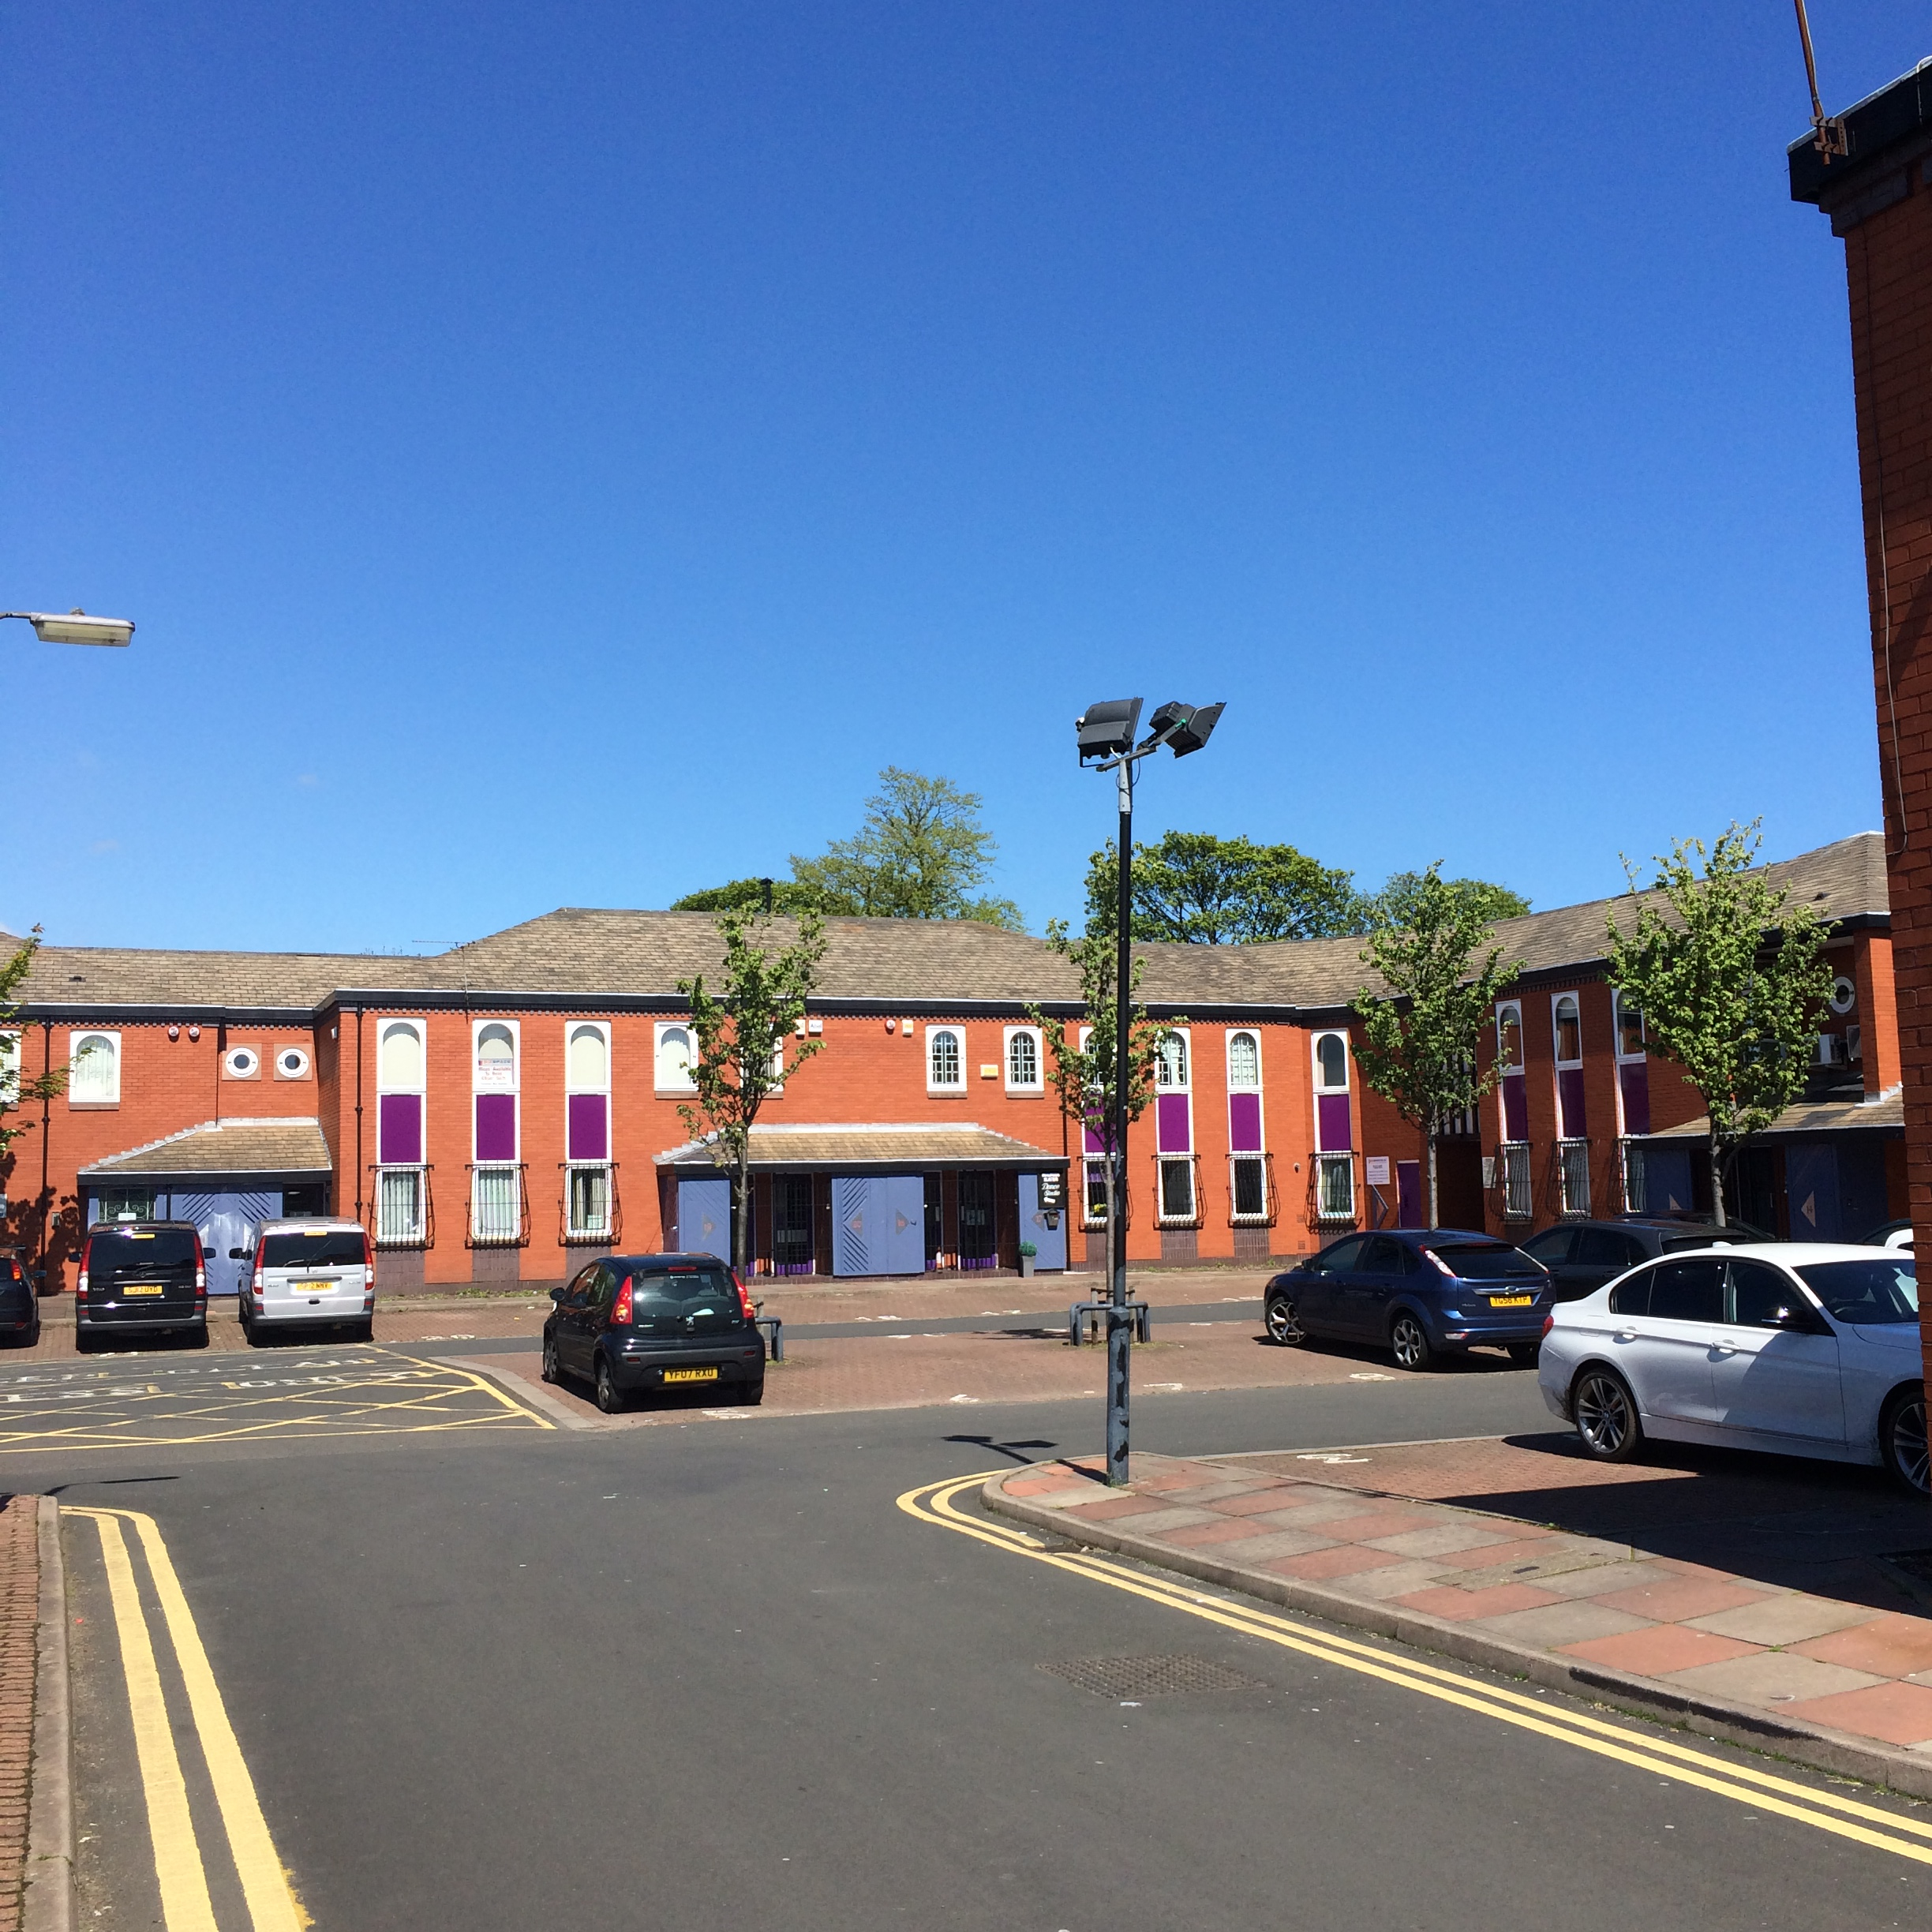 Main Image, Bizspace, Albion House, North Shields, Northumberland, NE29